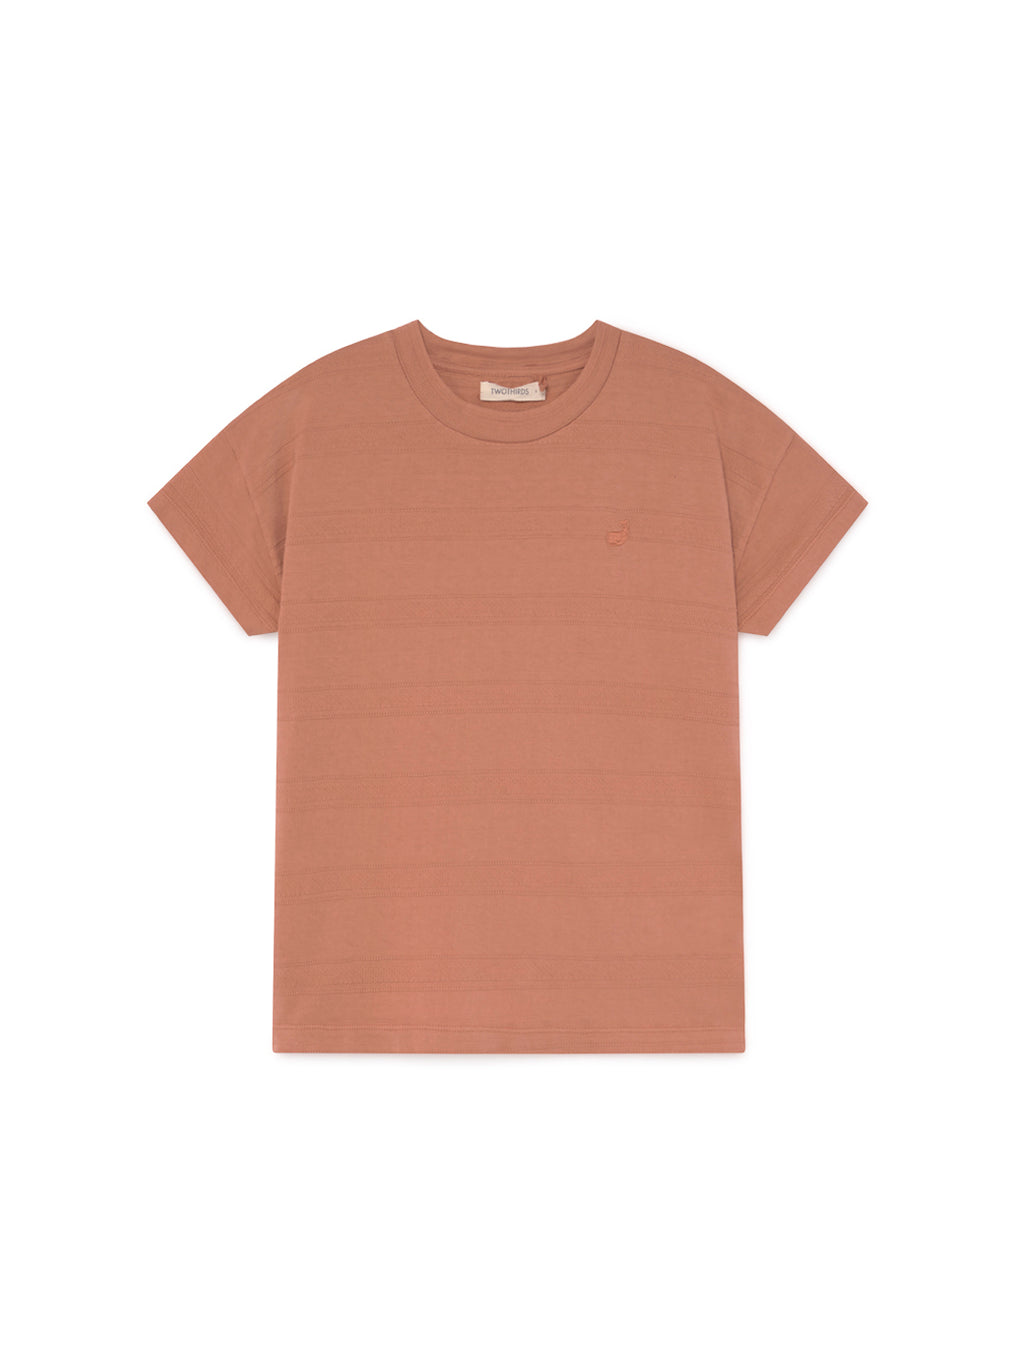 TWOTHIRDS Womens Tee: Tahiti - pale brick. product close up